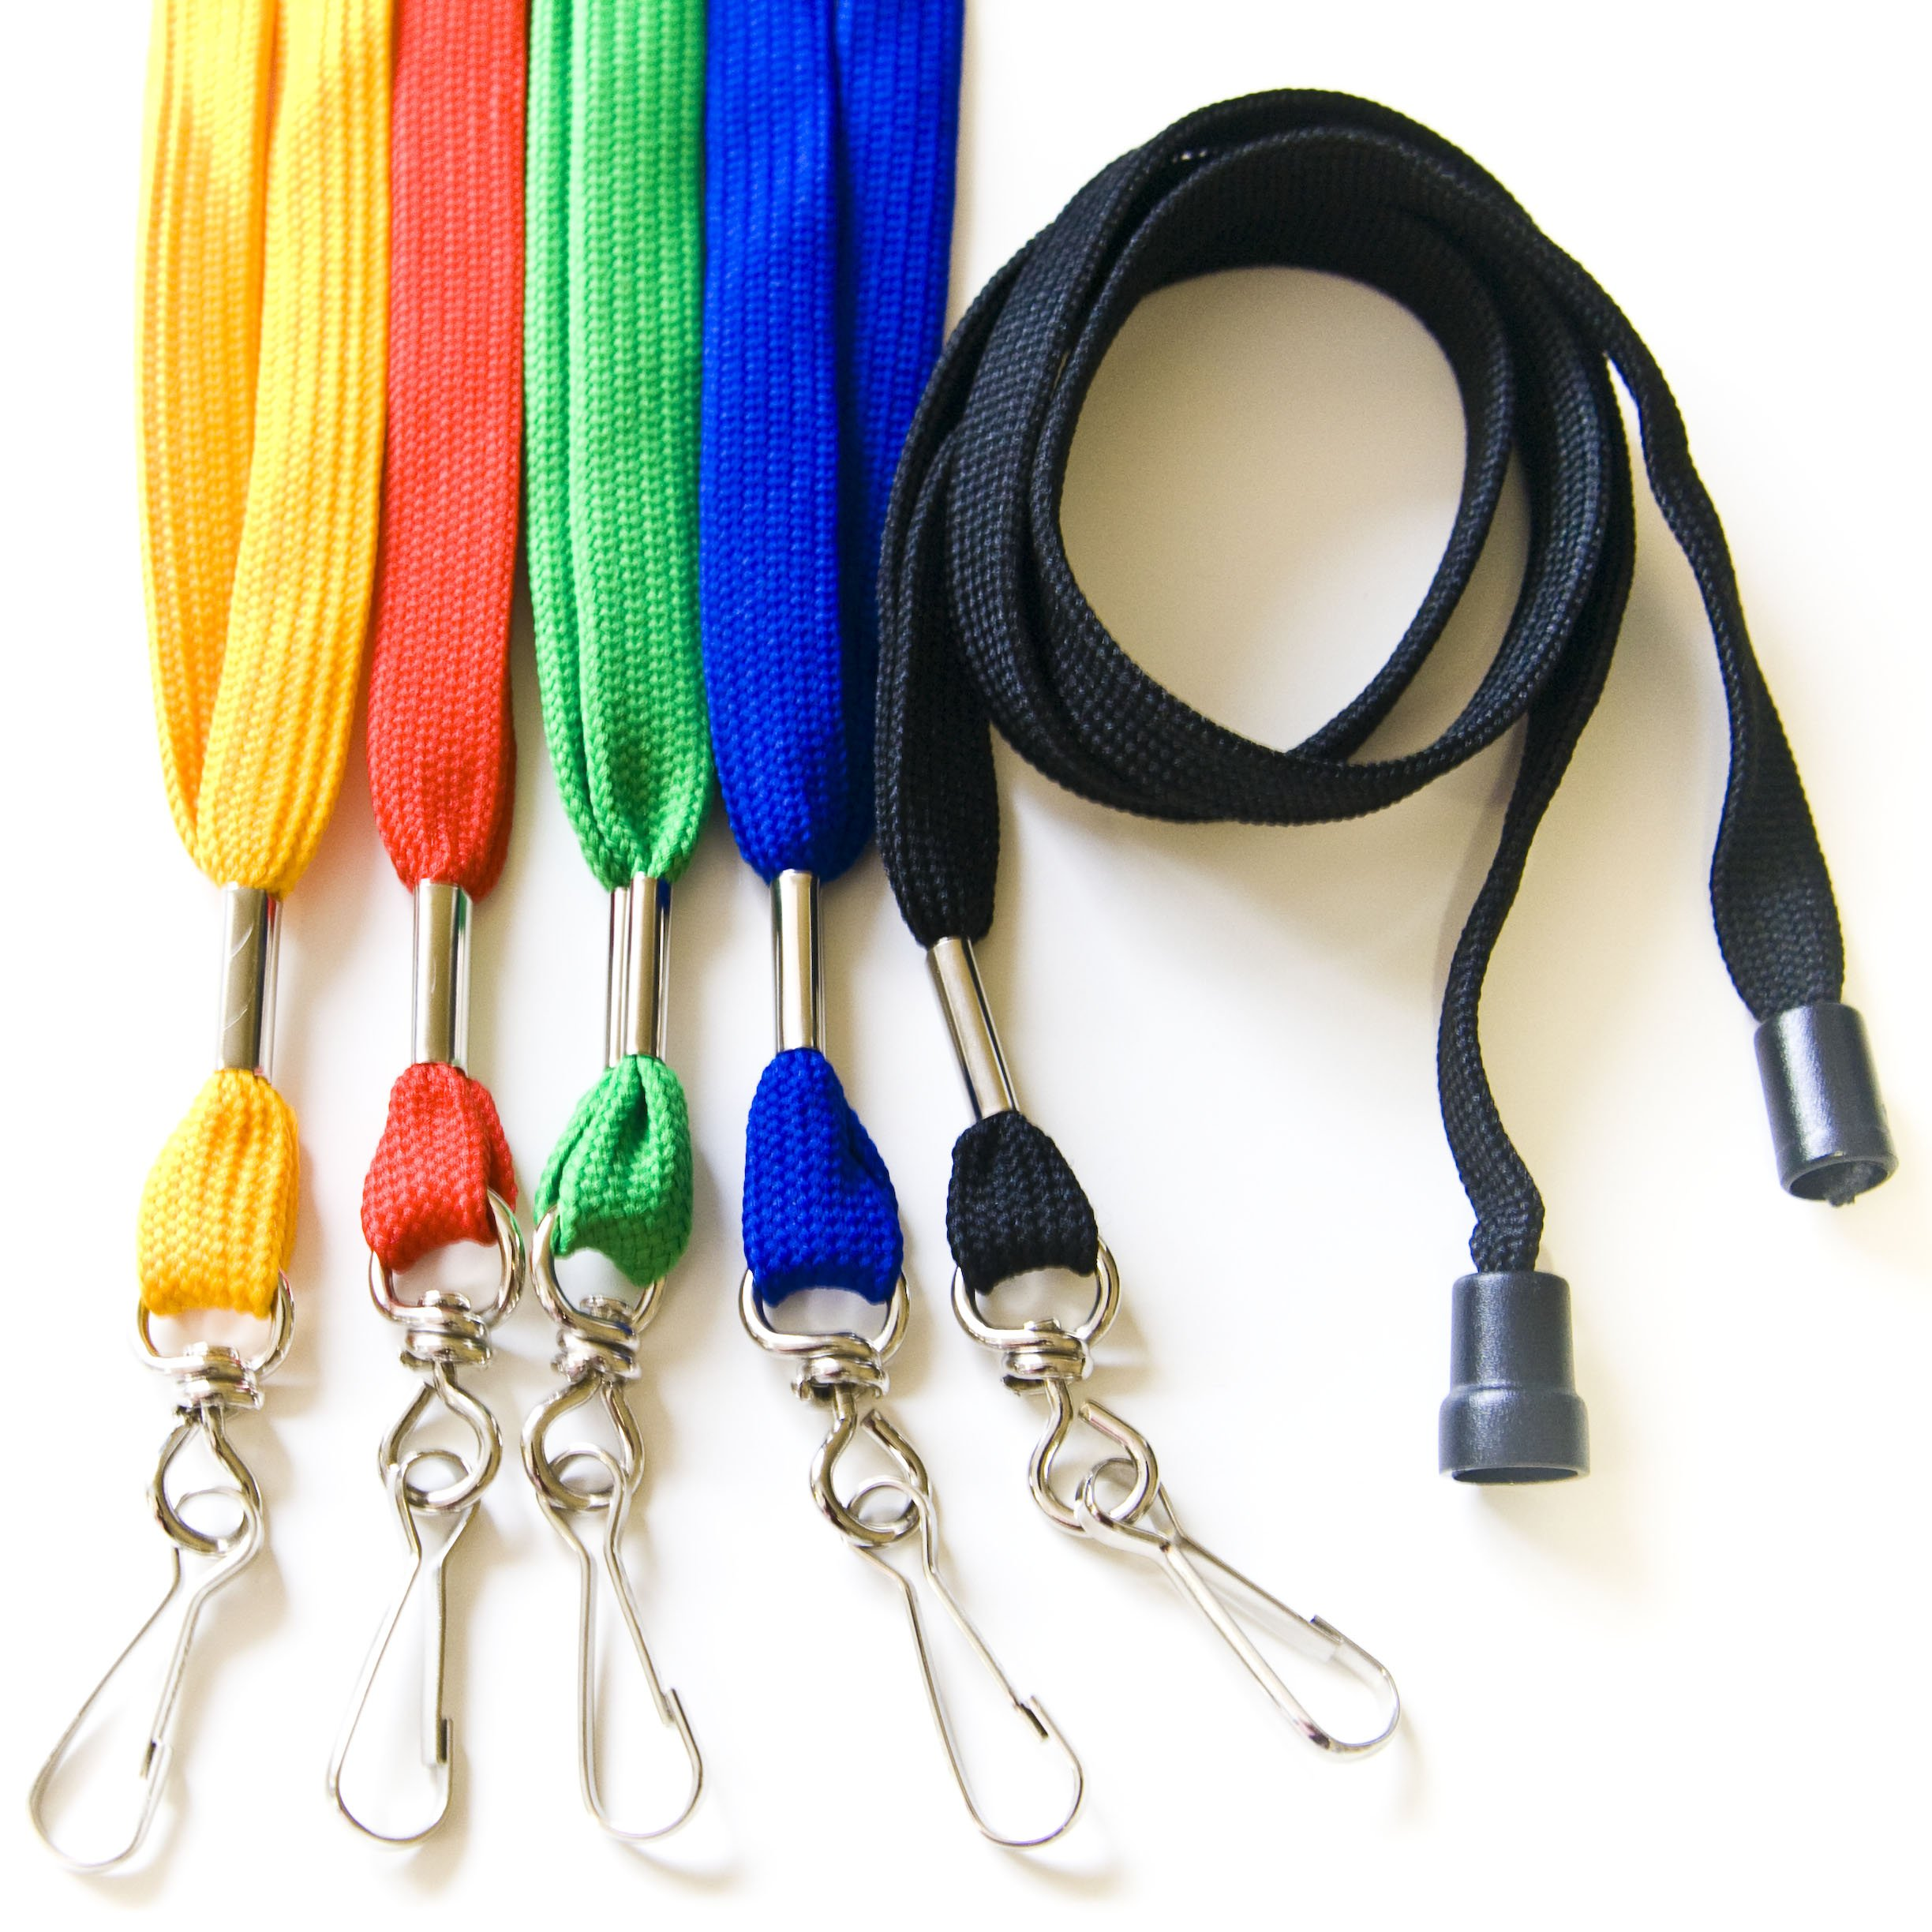 100PCS 1/2'' Breakaway ID Neck Lanyards with Swivel J Hook for ID Cards/Badges (Assorted Color) by OnDepot.com